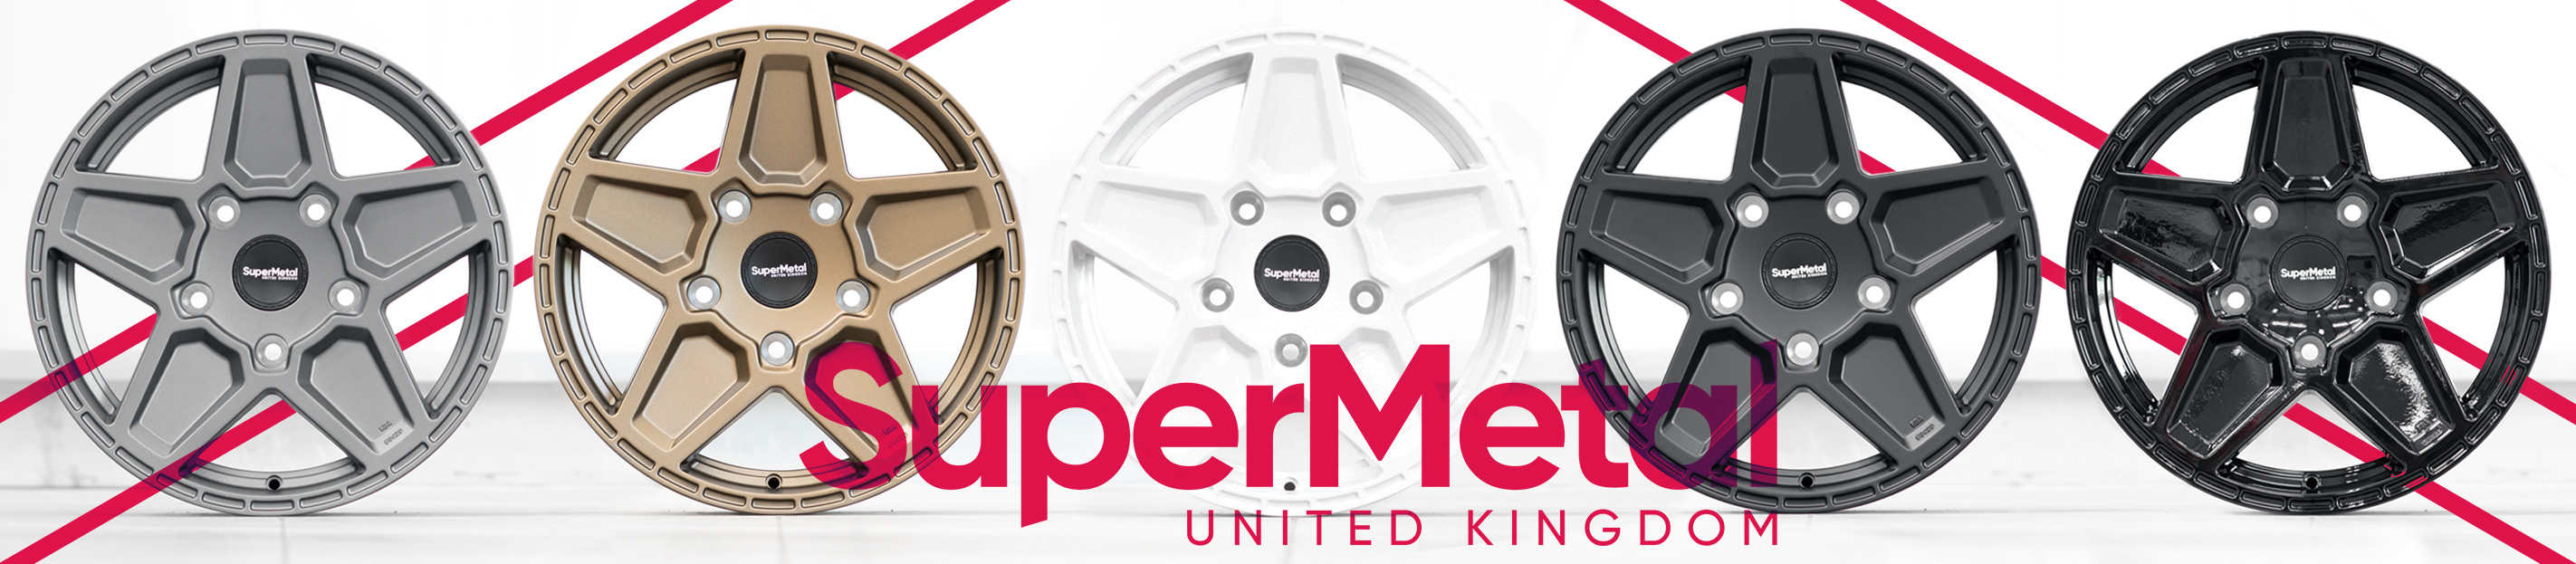 See our full range of SuperMetal Alloy Wheels